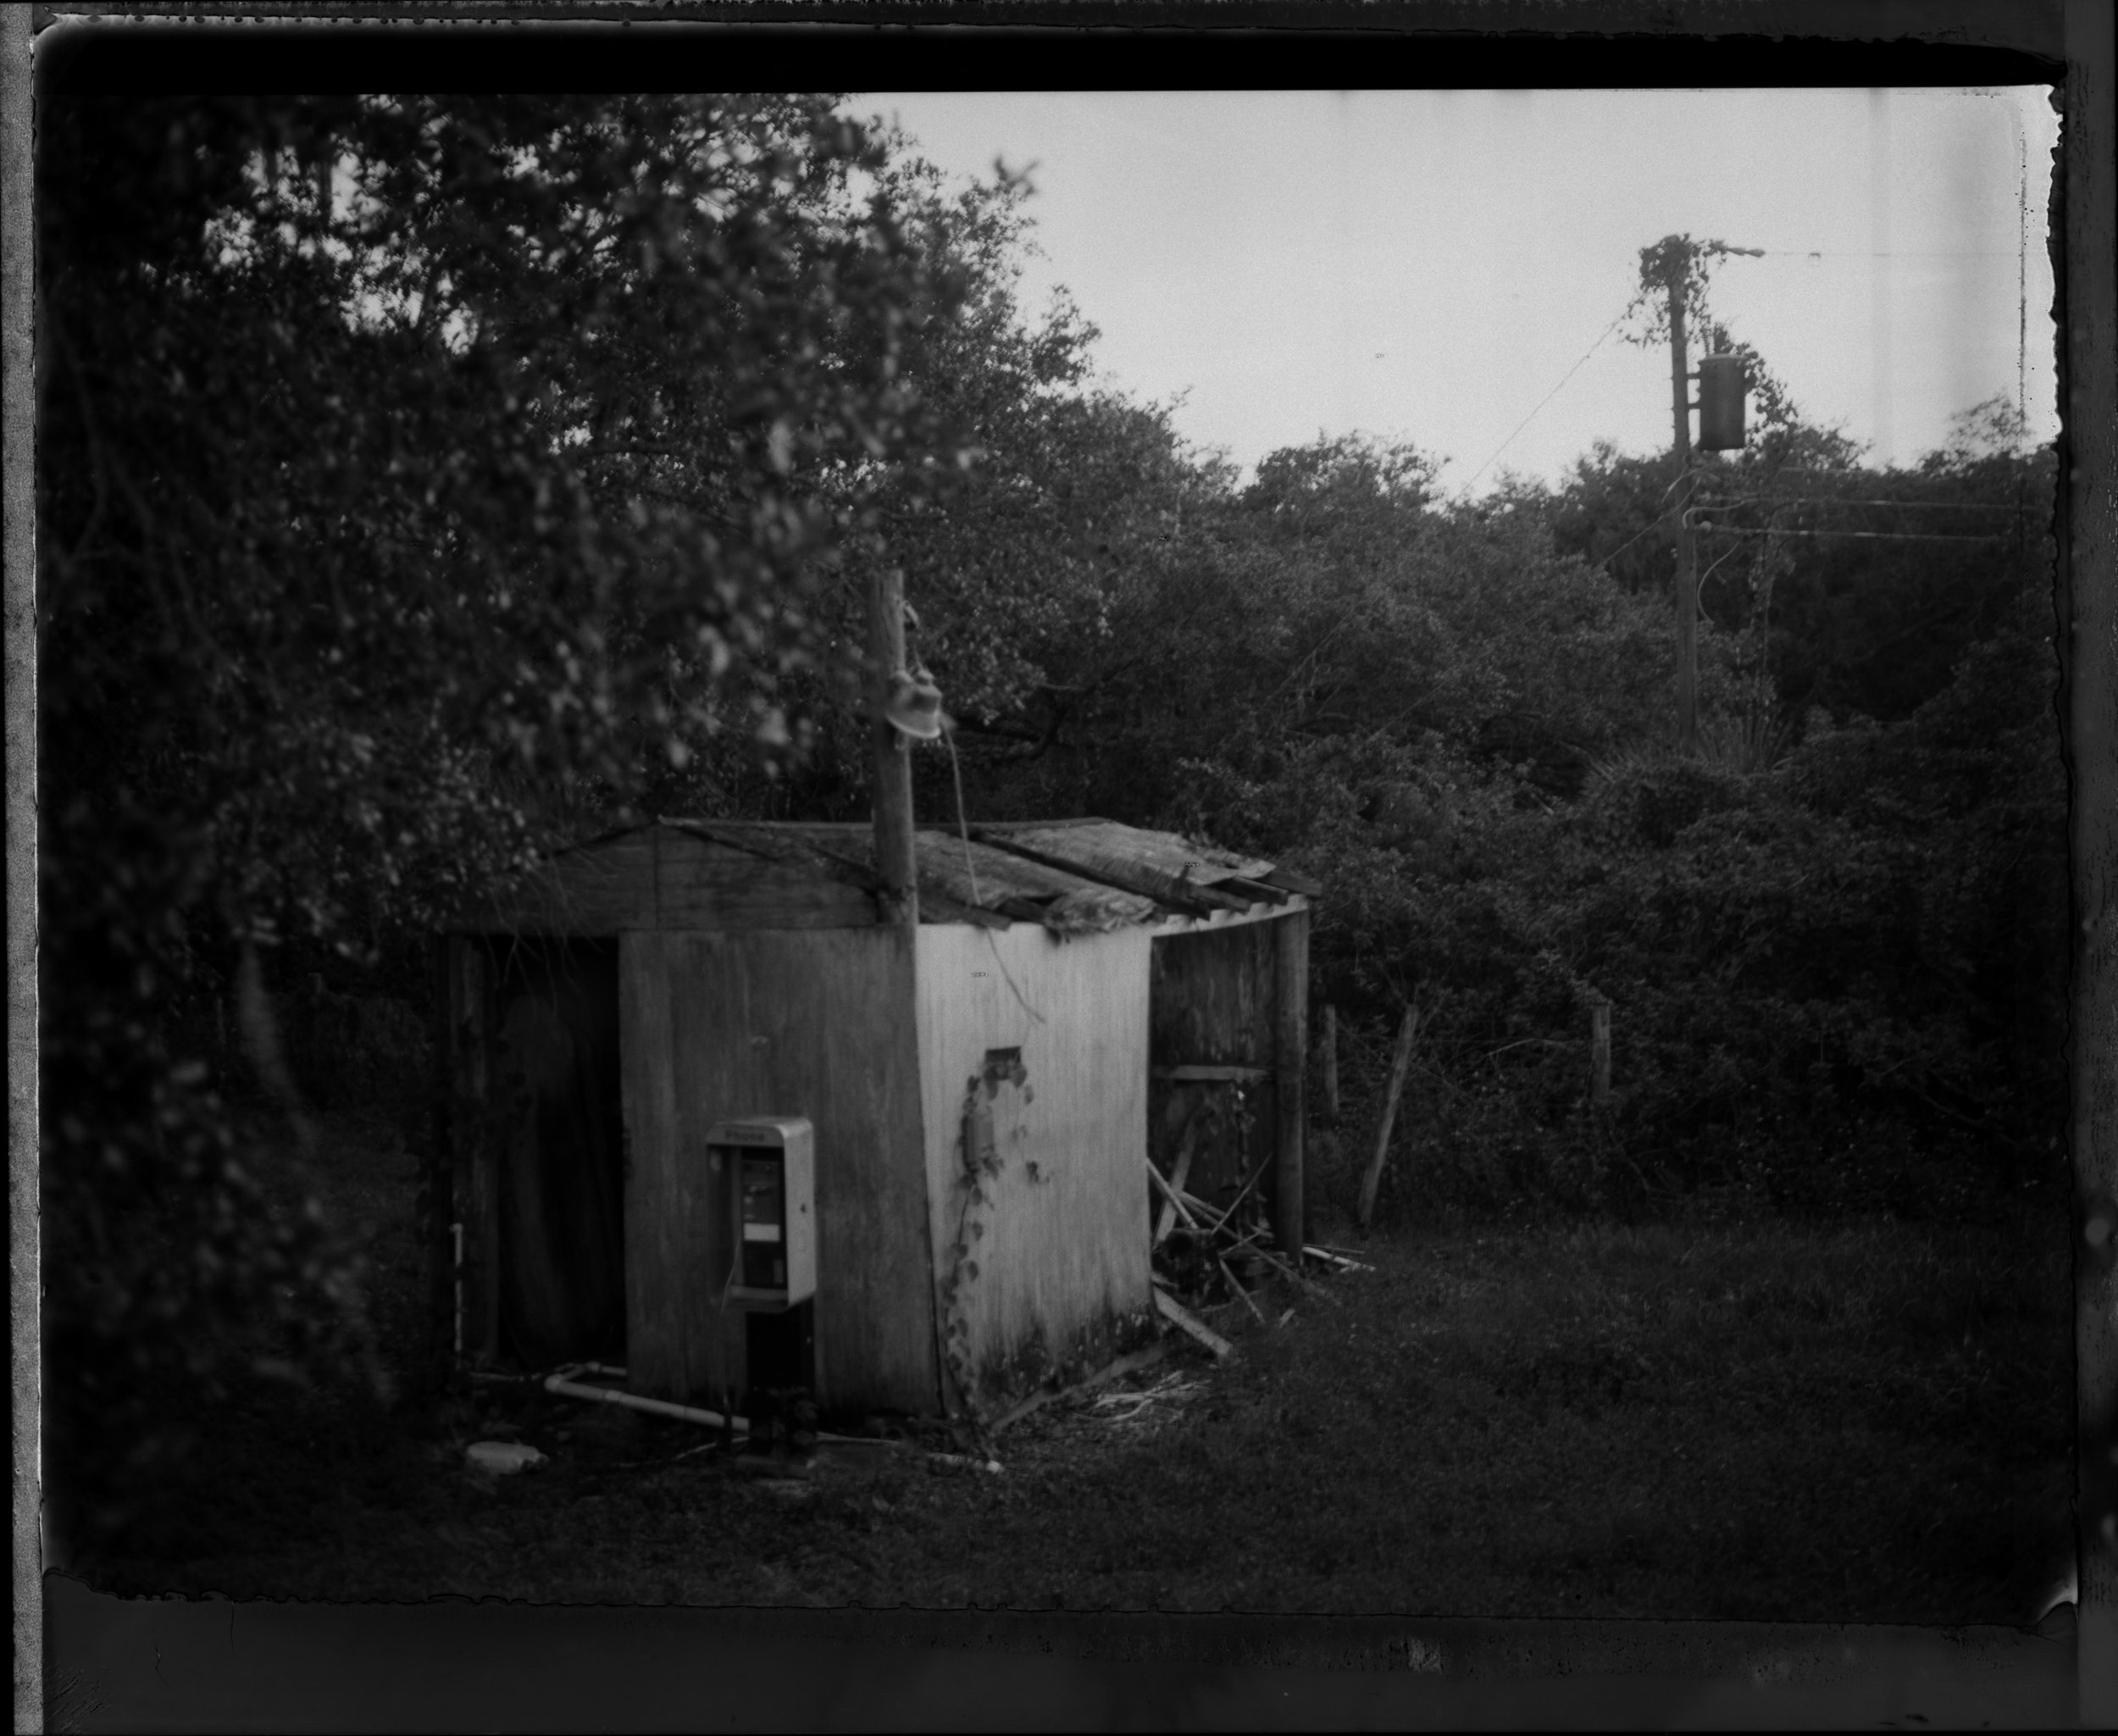 Photographs of victims of forced labor in the United States. Photographs of victims of forced labor in the United States.   Photographs from slave labor camp near Immokalee, Florida where Miguel Flores and Sebastian Gomez, among others, forced mostly undocumented Central American and Mexican migrants to become modern day slaves. The labor camp, although decaying still stands where it stood in 1997, when the two men were prosecuted.    In 1997, Miguel Flores and Sebastian Gomez were sentenced to 15 years each in federal prison on slavery, extortion, and firearms charges, amongst others. Flores and Gomez had a workforce of over 400 men and women in Florida and South Carolina, harvesting vegetables and citrus. The workers, mostly indigenous Mexicans and Guatemalans, were forced to work 10-12 hour days, 6 days per week, for as little as $20 per week, under the watch of armed guards. Those who attempted escape were assaulted, pistol-whipped, and even shot. The case was brought to federal authorities after five years of investigation by escaped workers and members from the Coalition of Immokalee Workers.  This project is supported by Lexis Nexis